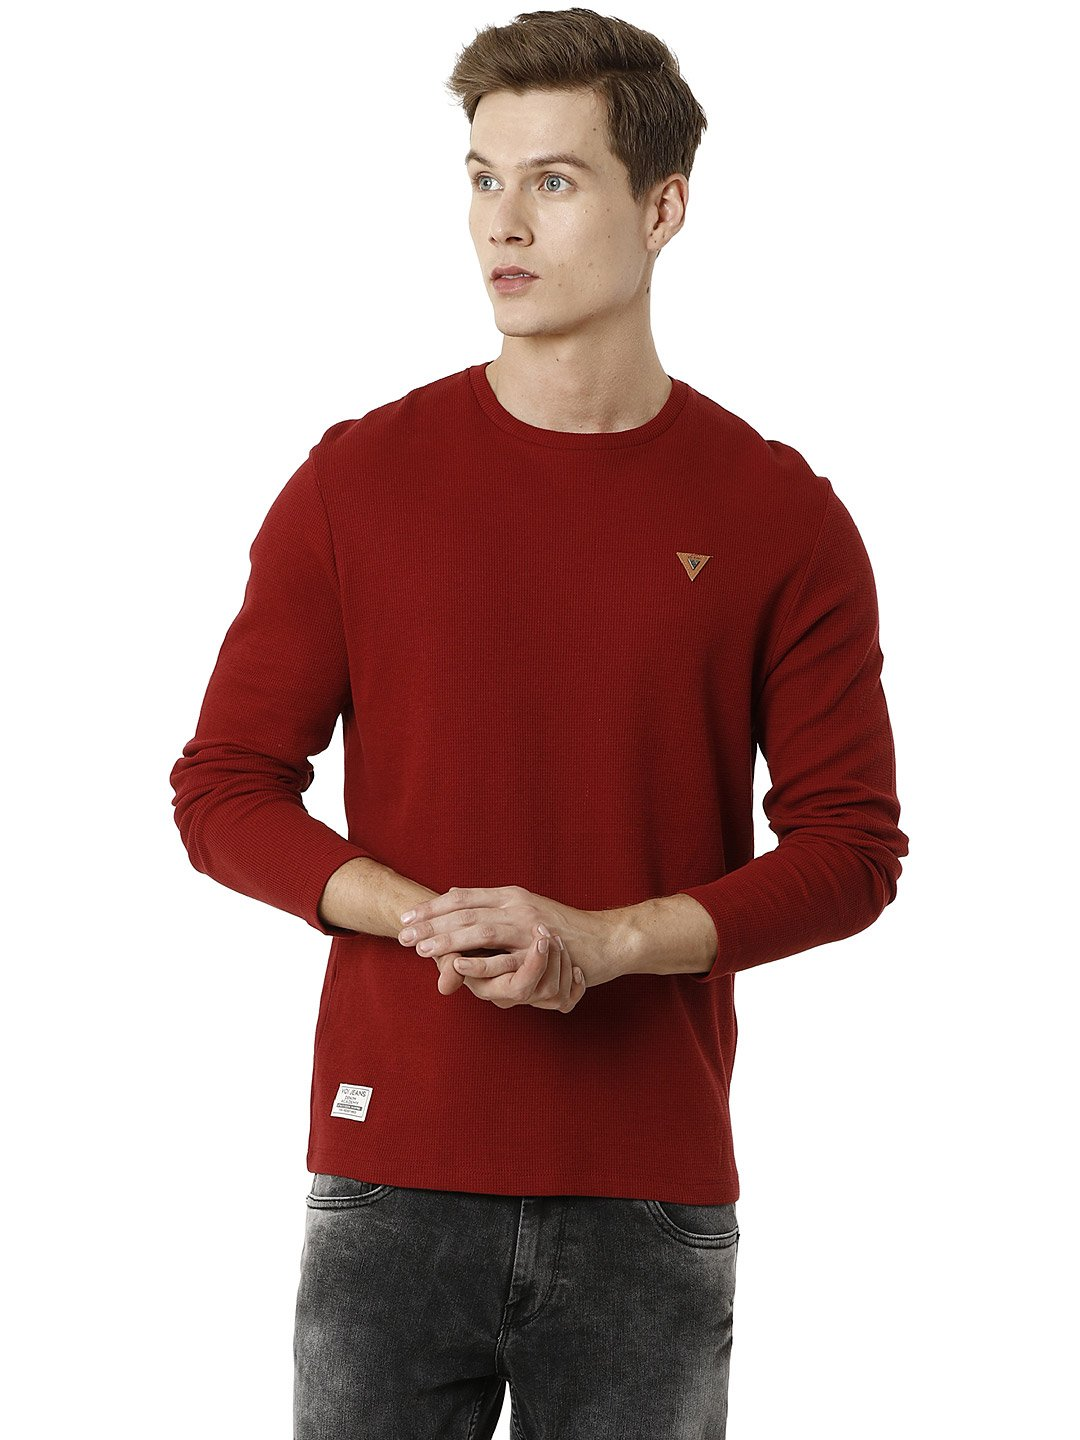 Voi Jeans | Red T-Shirts (VOTS1445)